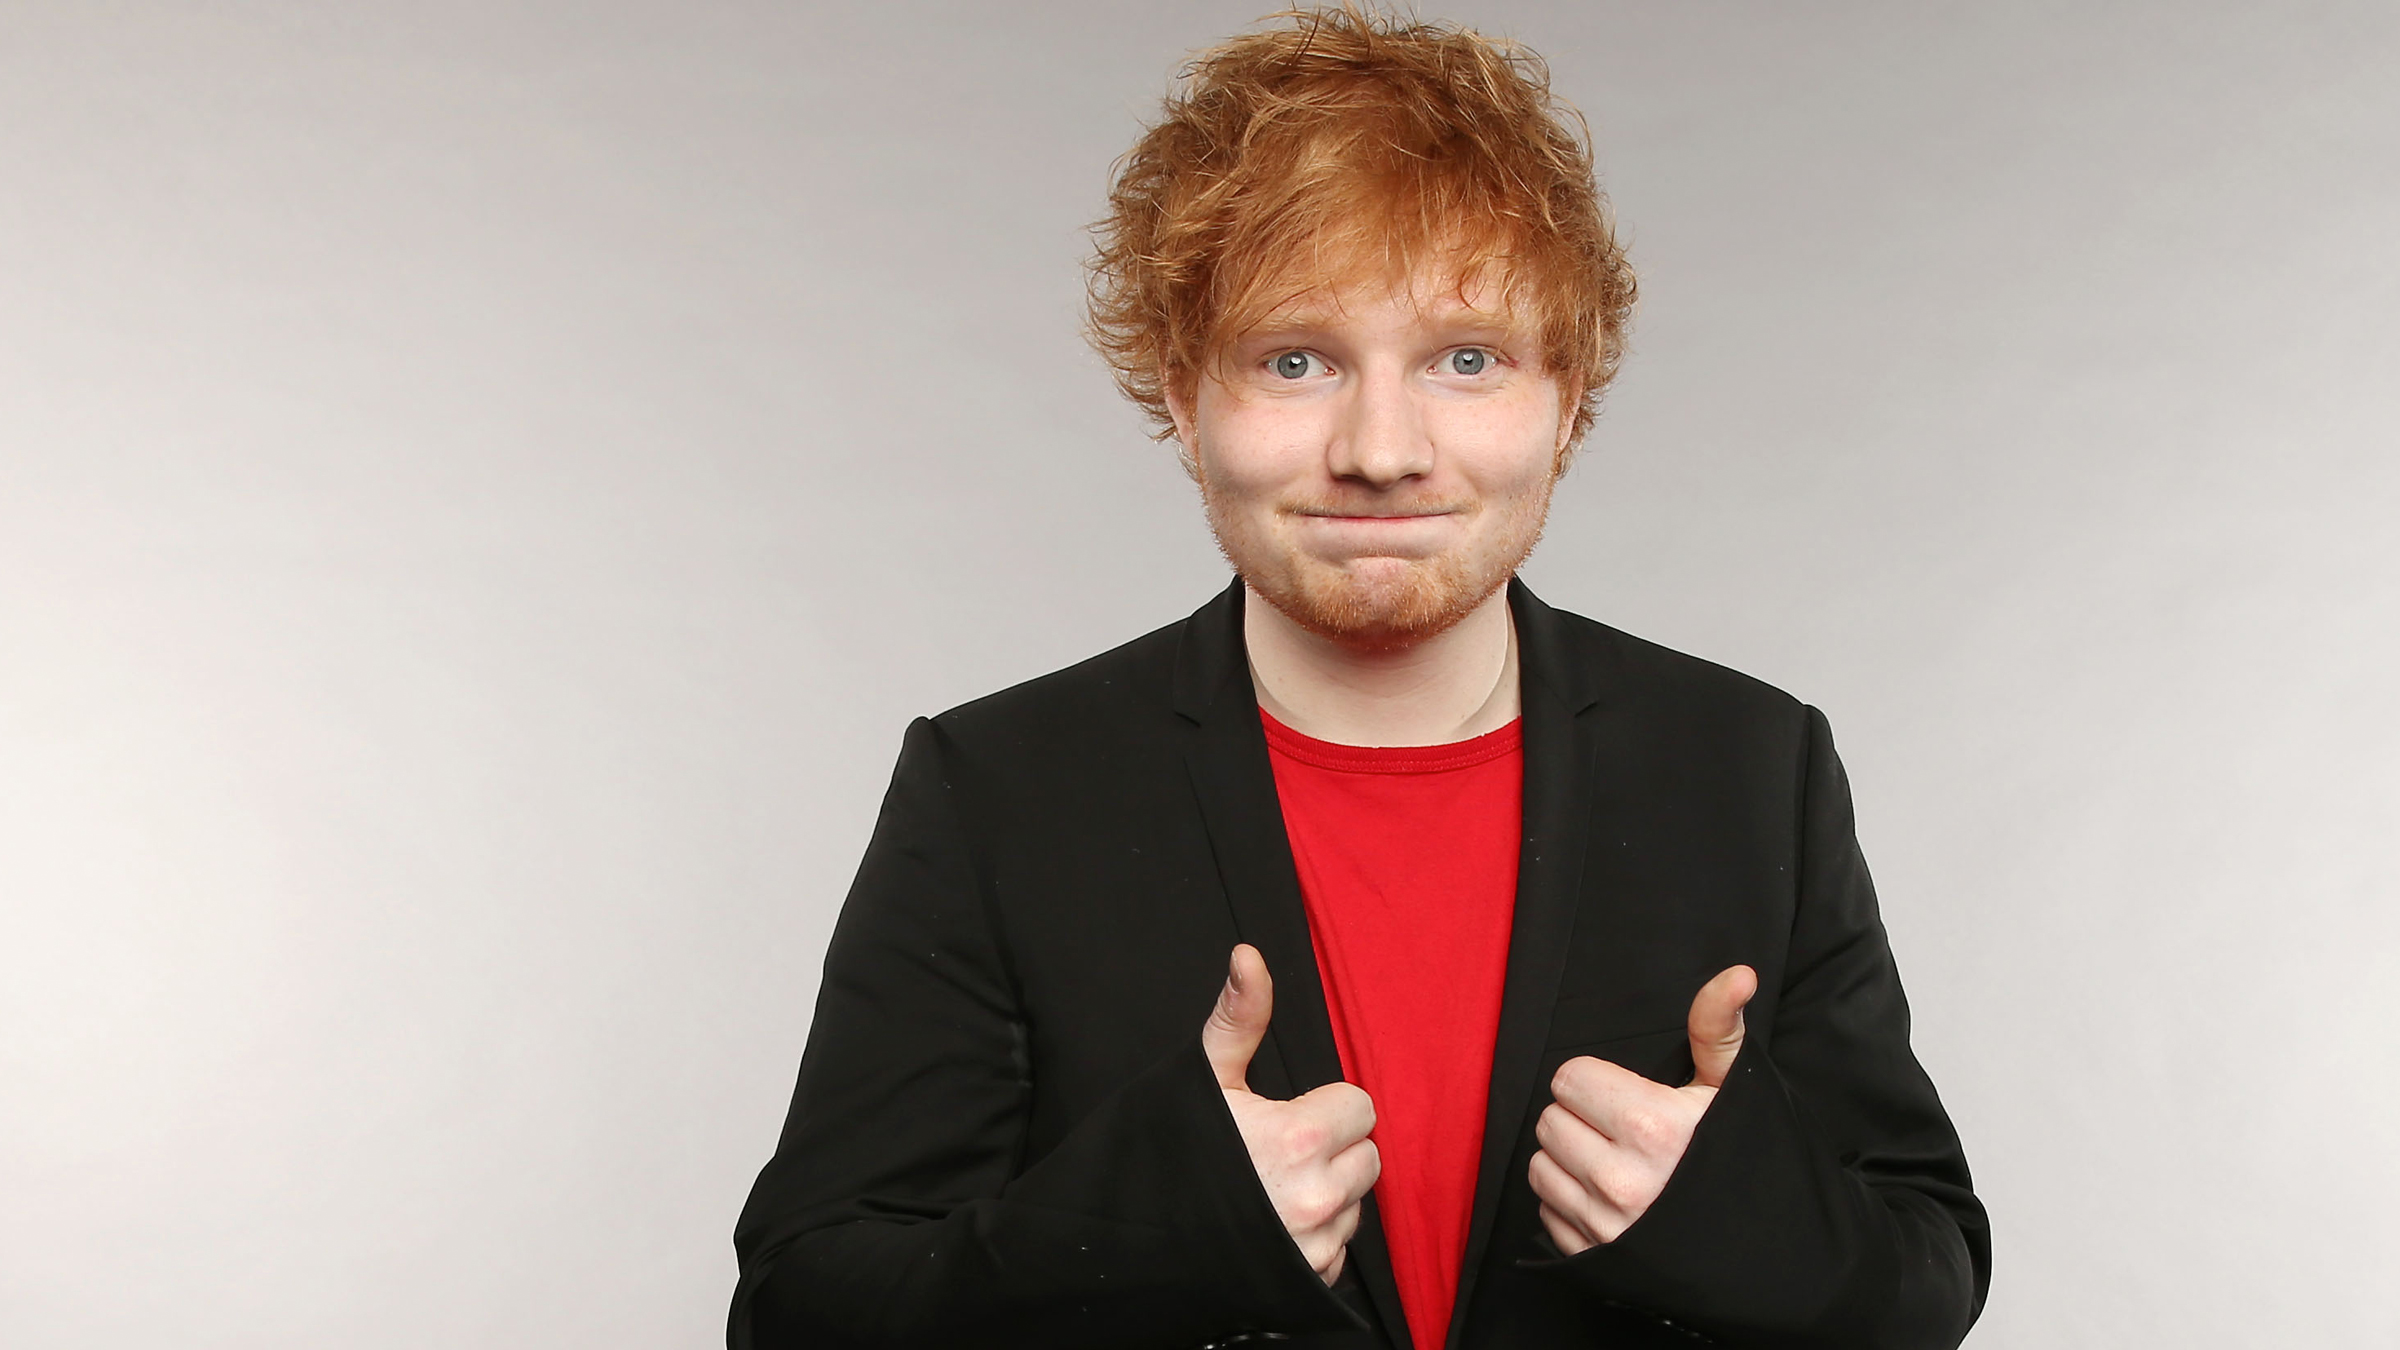 Teaser ed sheeran thumbs up